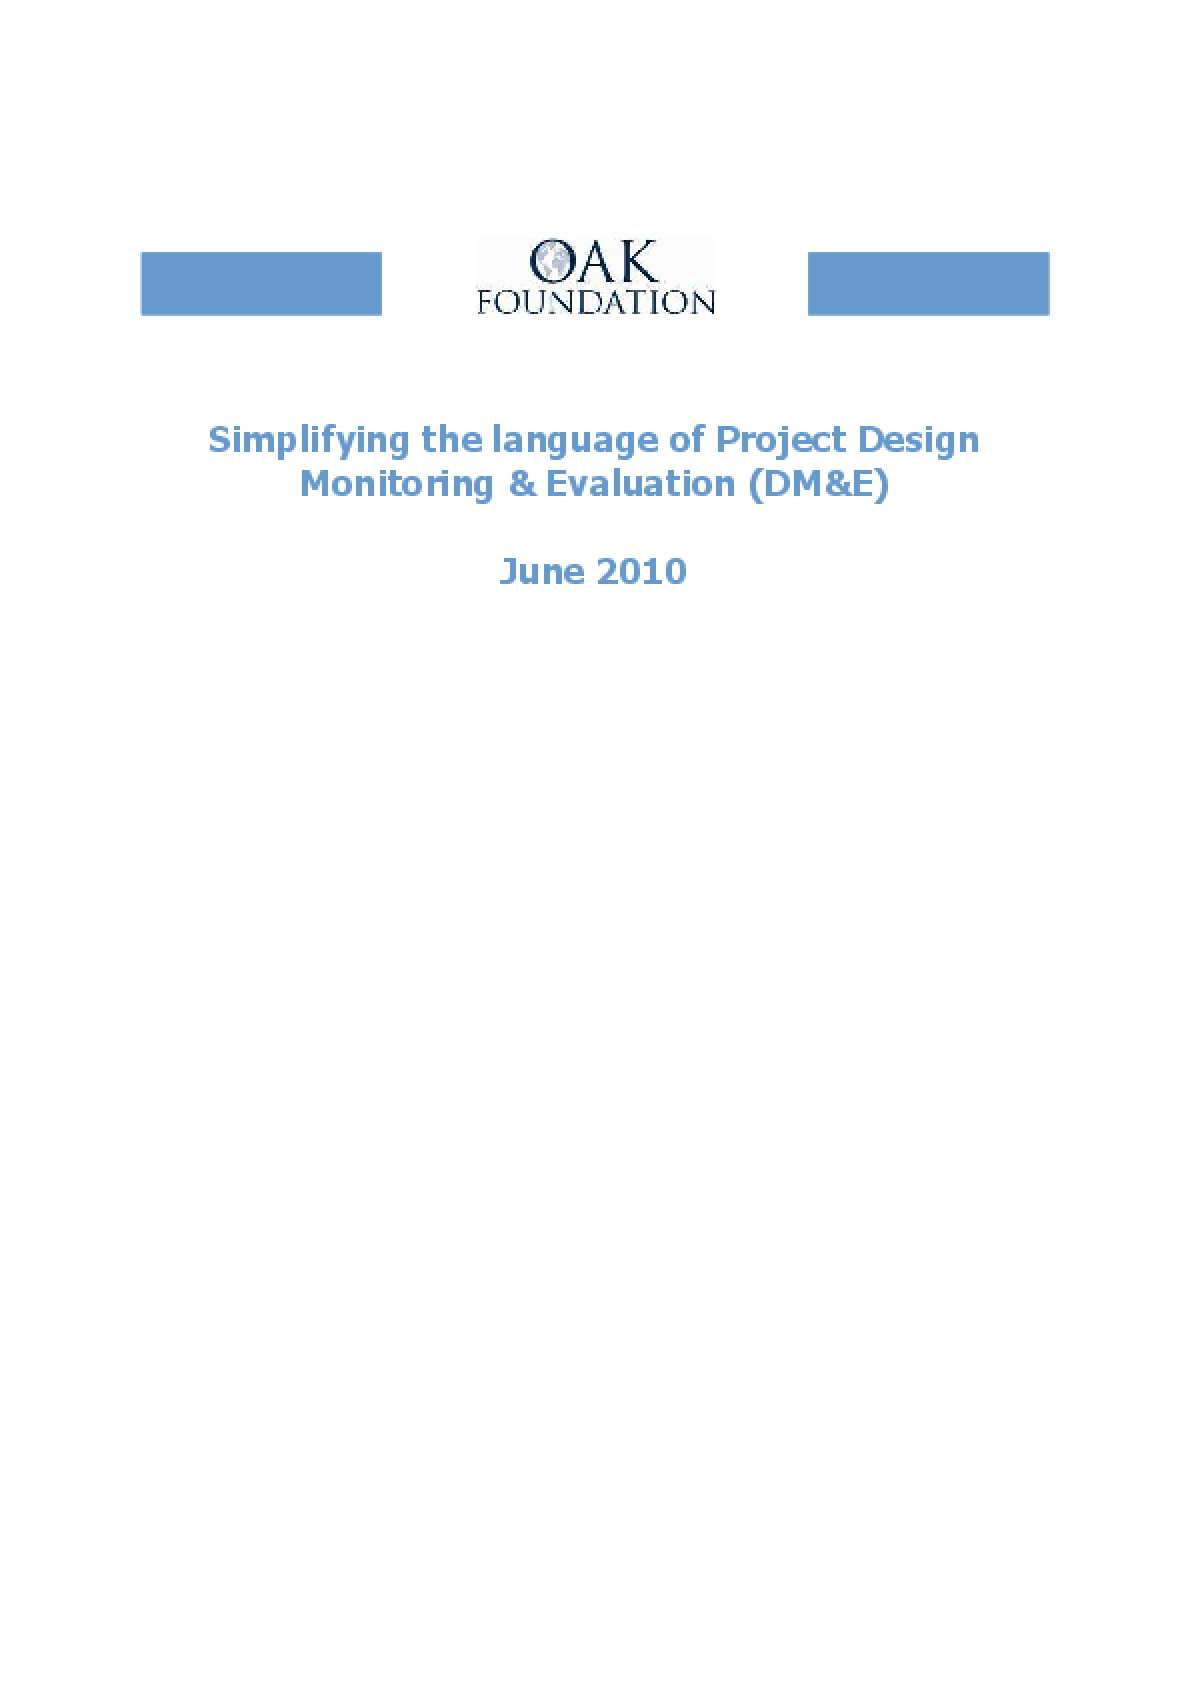 Simplifying the Language of Project Design Monitoring & Evaluation (DM&E)